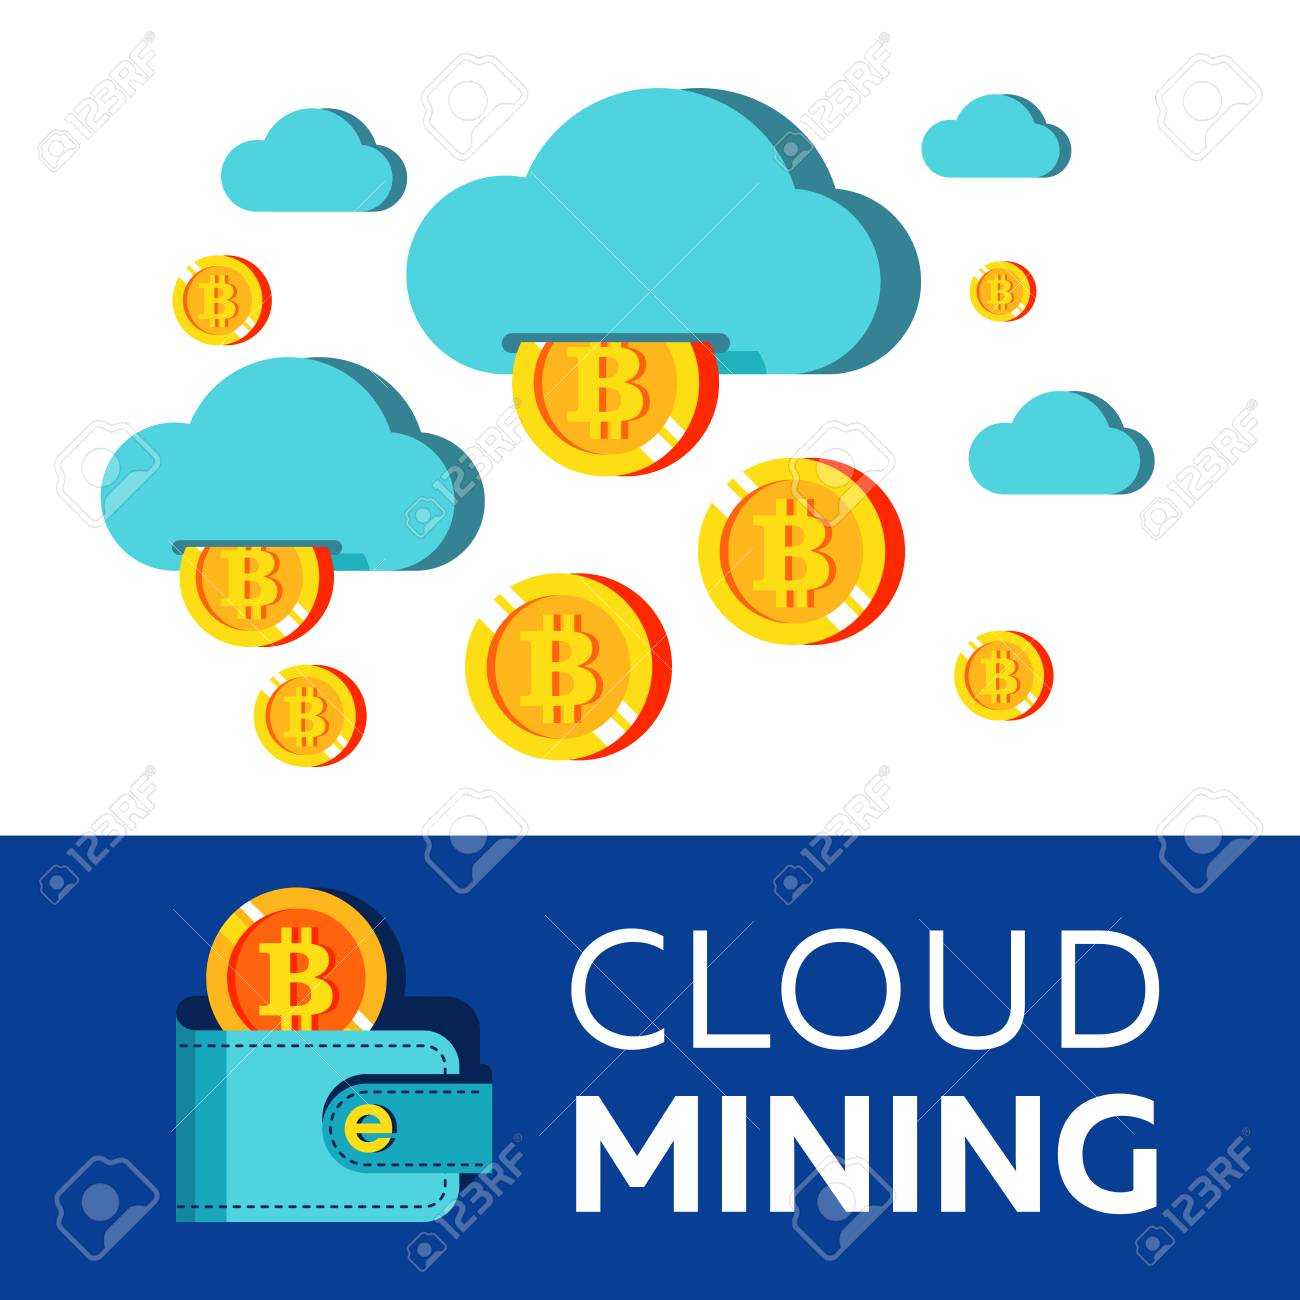 Cryptocurrency mining cloud